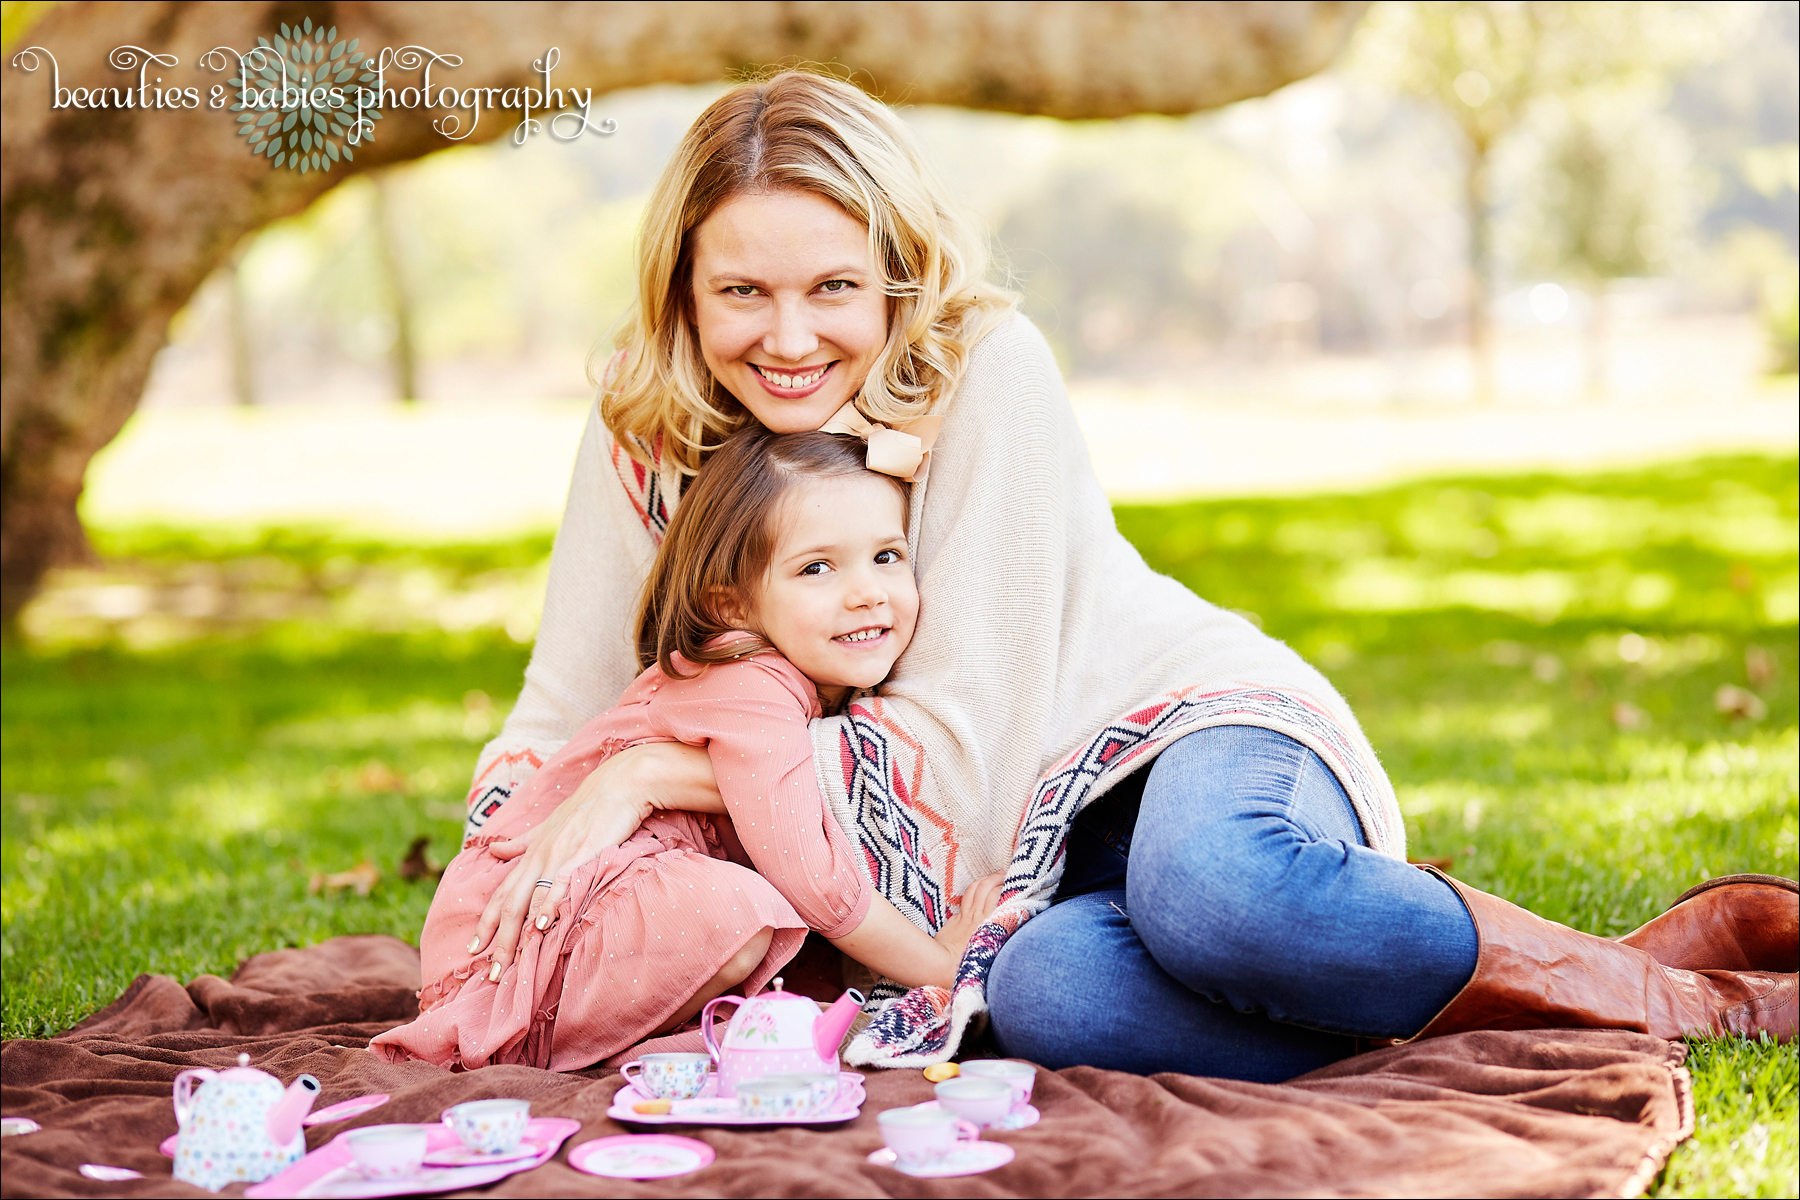 Creative outdoor and home family photography Los Angeles family lifestyle photographer